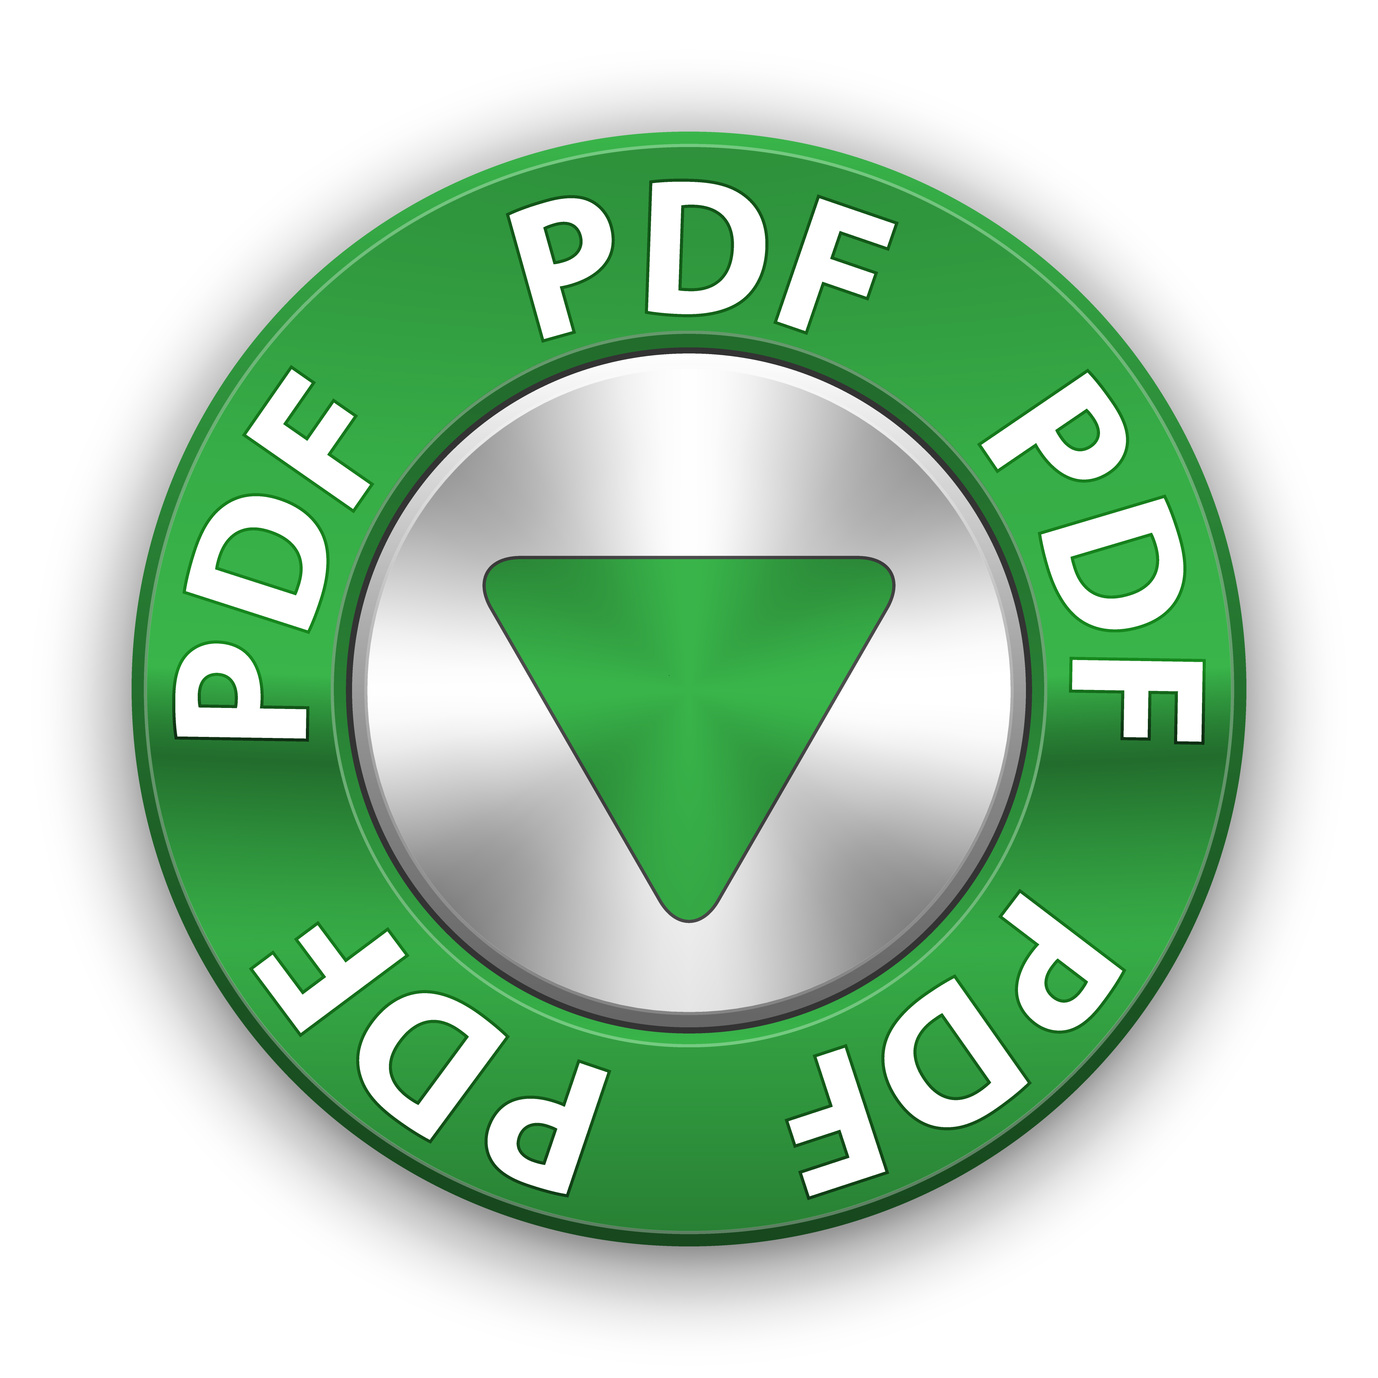 Download the PDF Customer Support Guide for Telephone